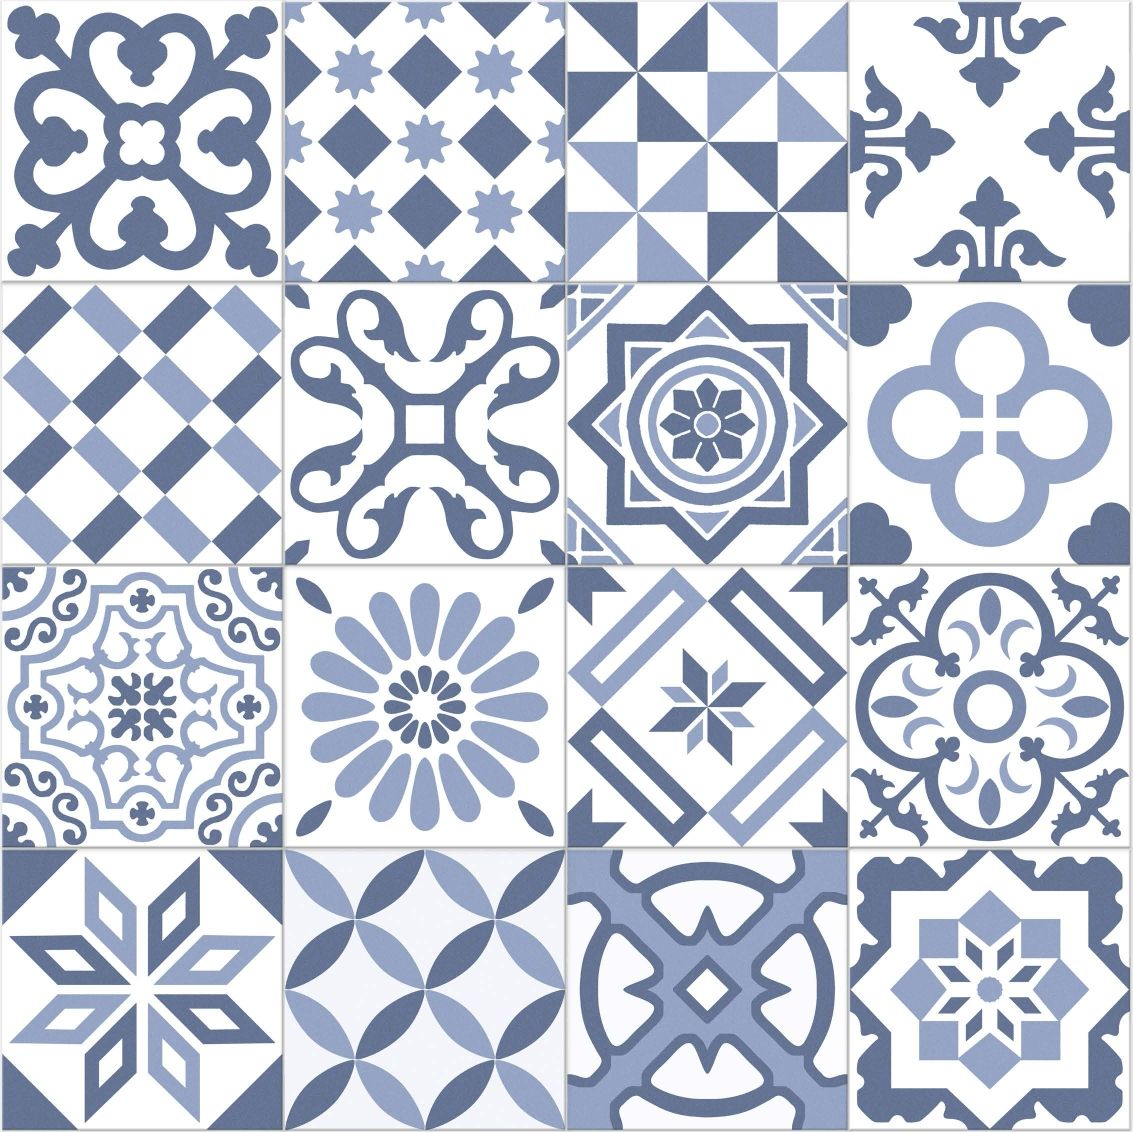 Carrelage imitation ciment bleu et blanc mix 20x20 cm for Carrelage mural blanc 20x20